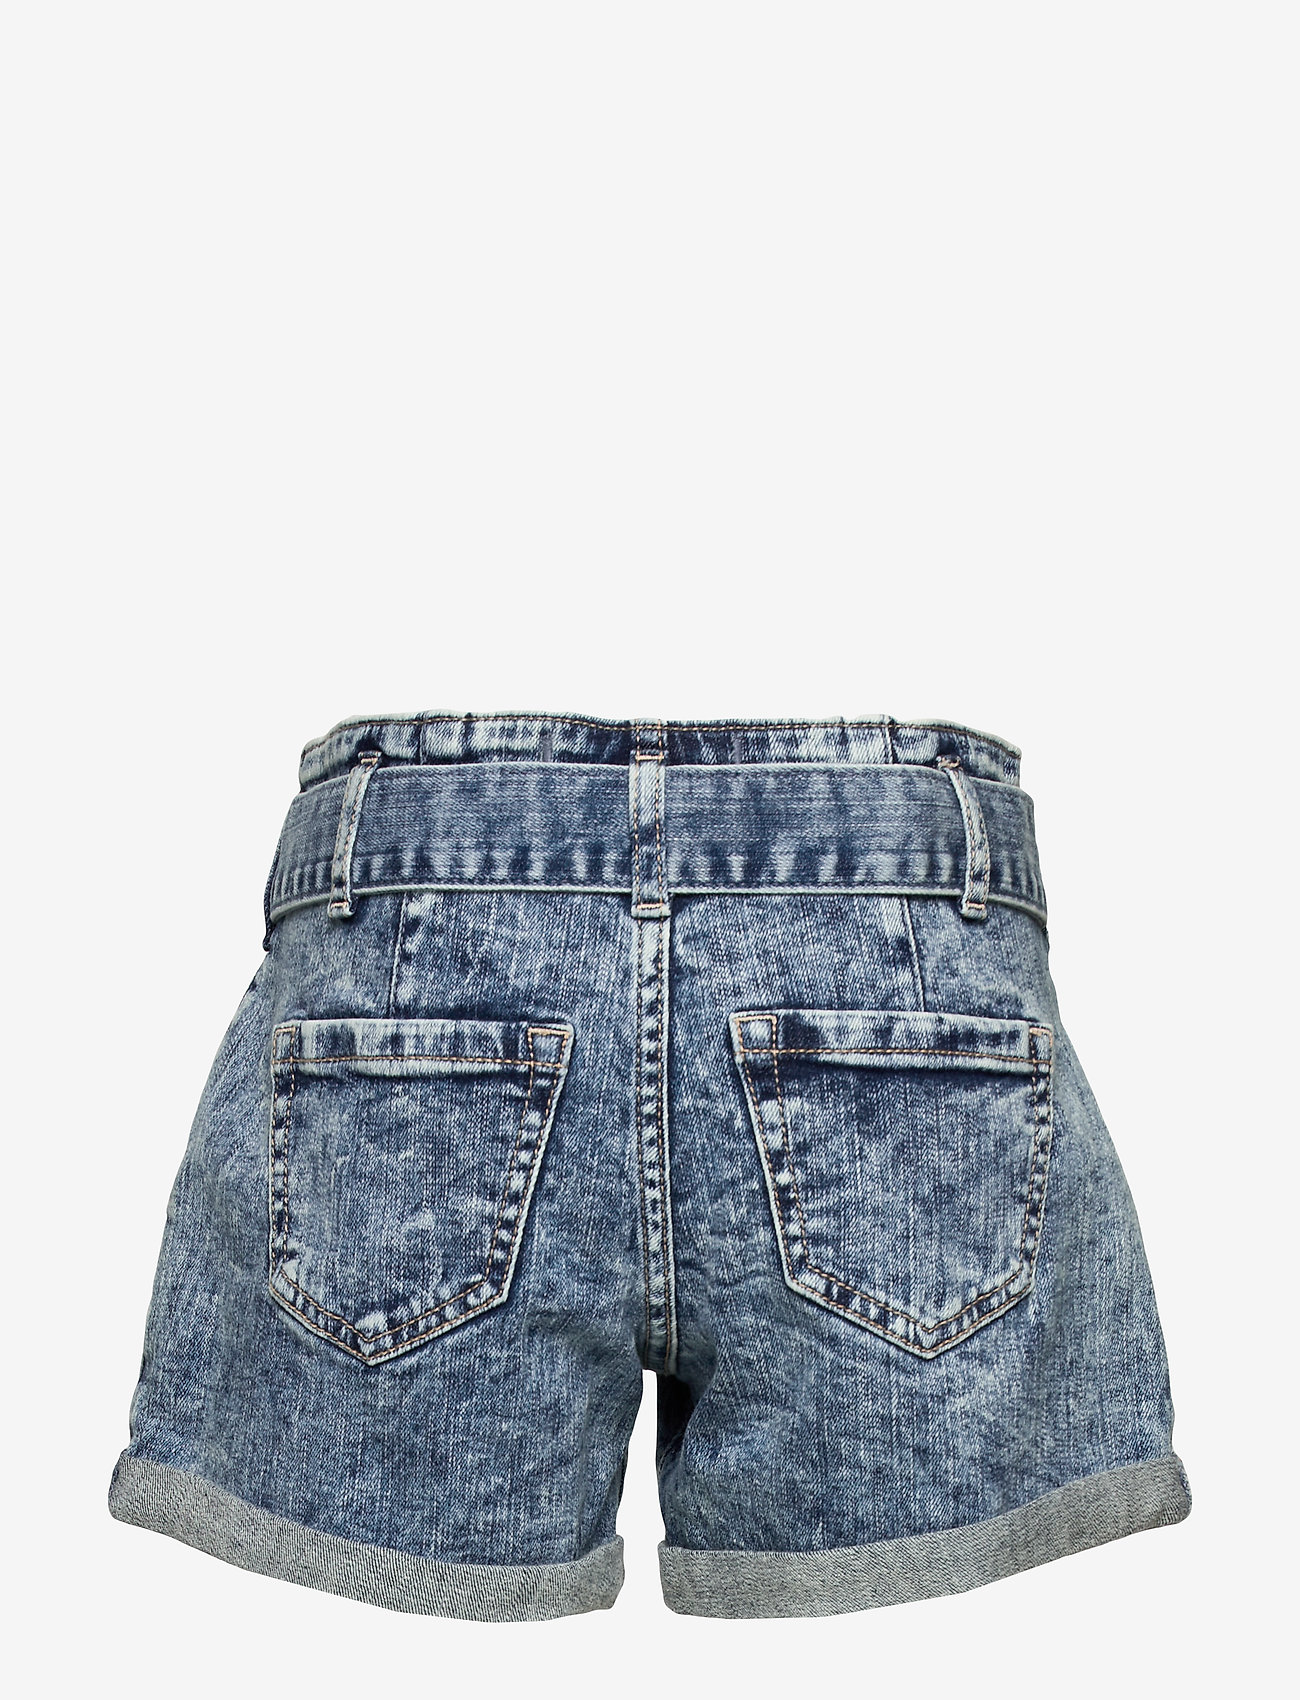 Abercrombie & Fitch Shorts - Nederdelar Super Light